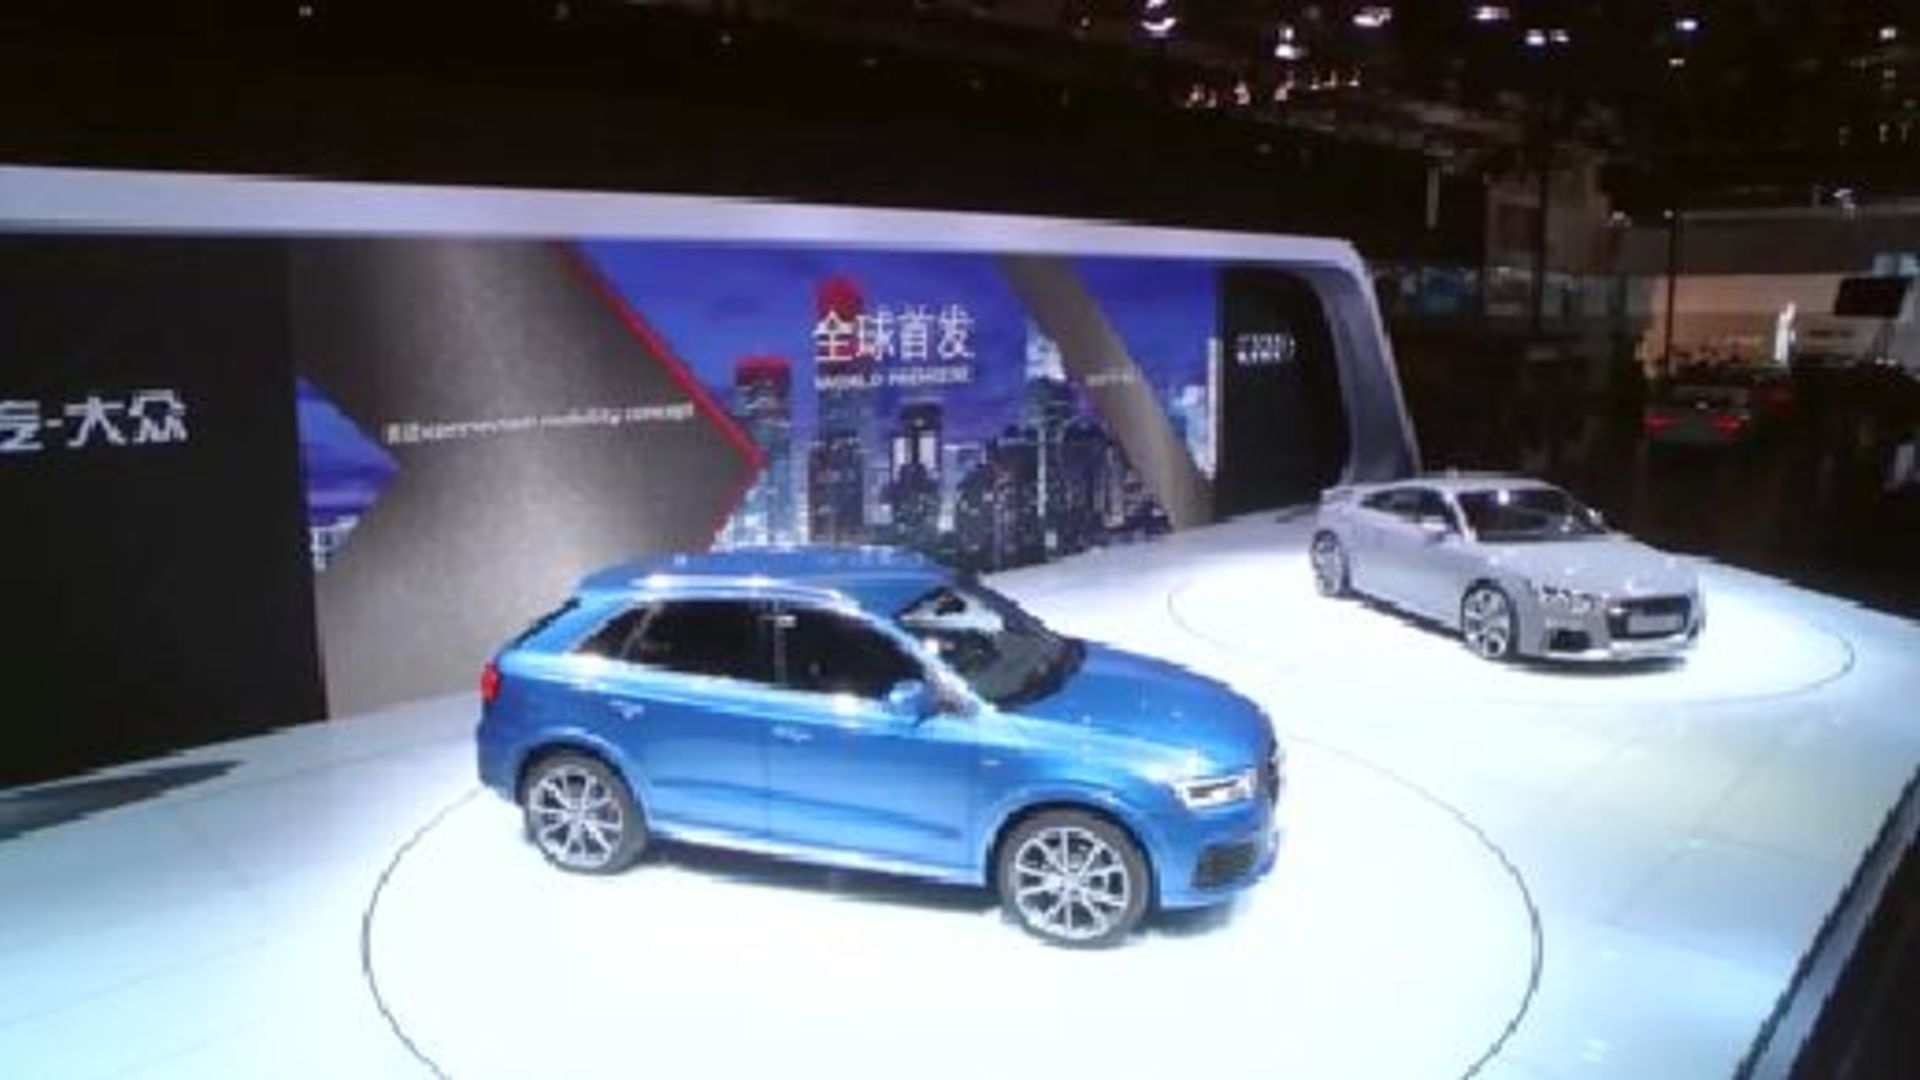 Auto China 2016 in Peking - Die Audi Pressekonferenz